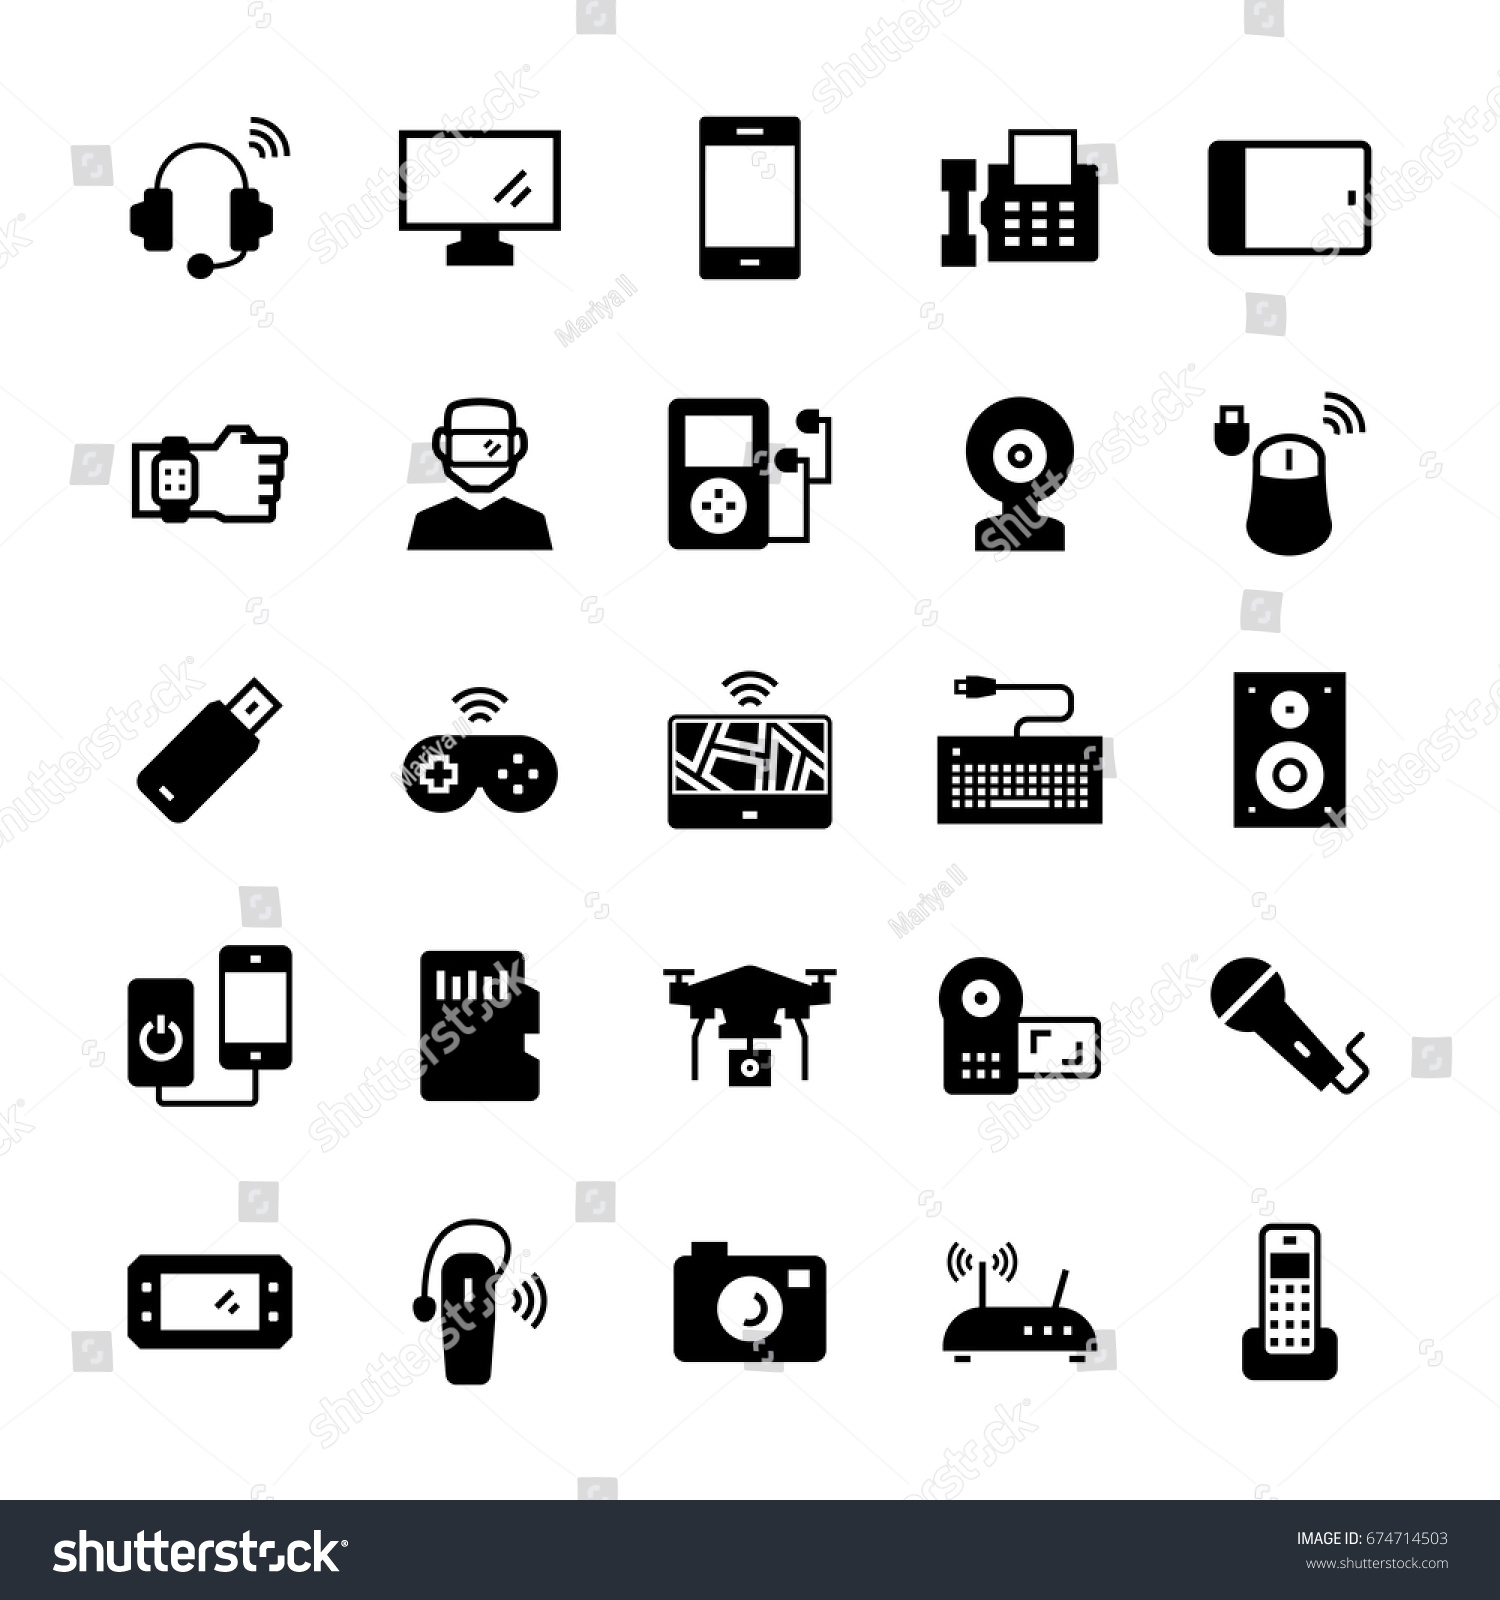 Electronicsgadgets Devices Icon Set Vector Symbols Stock Photo ...